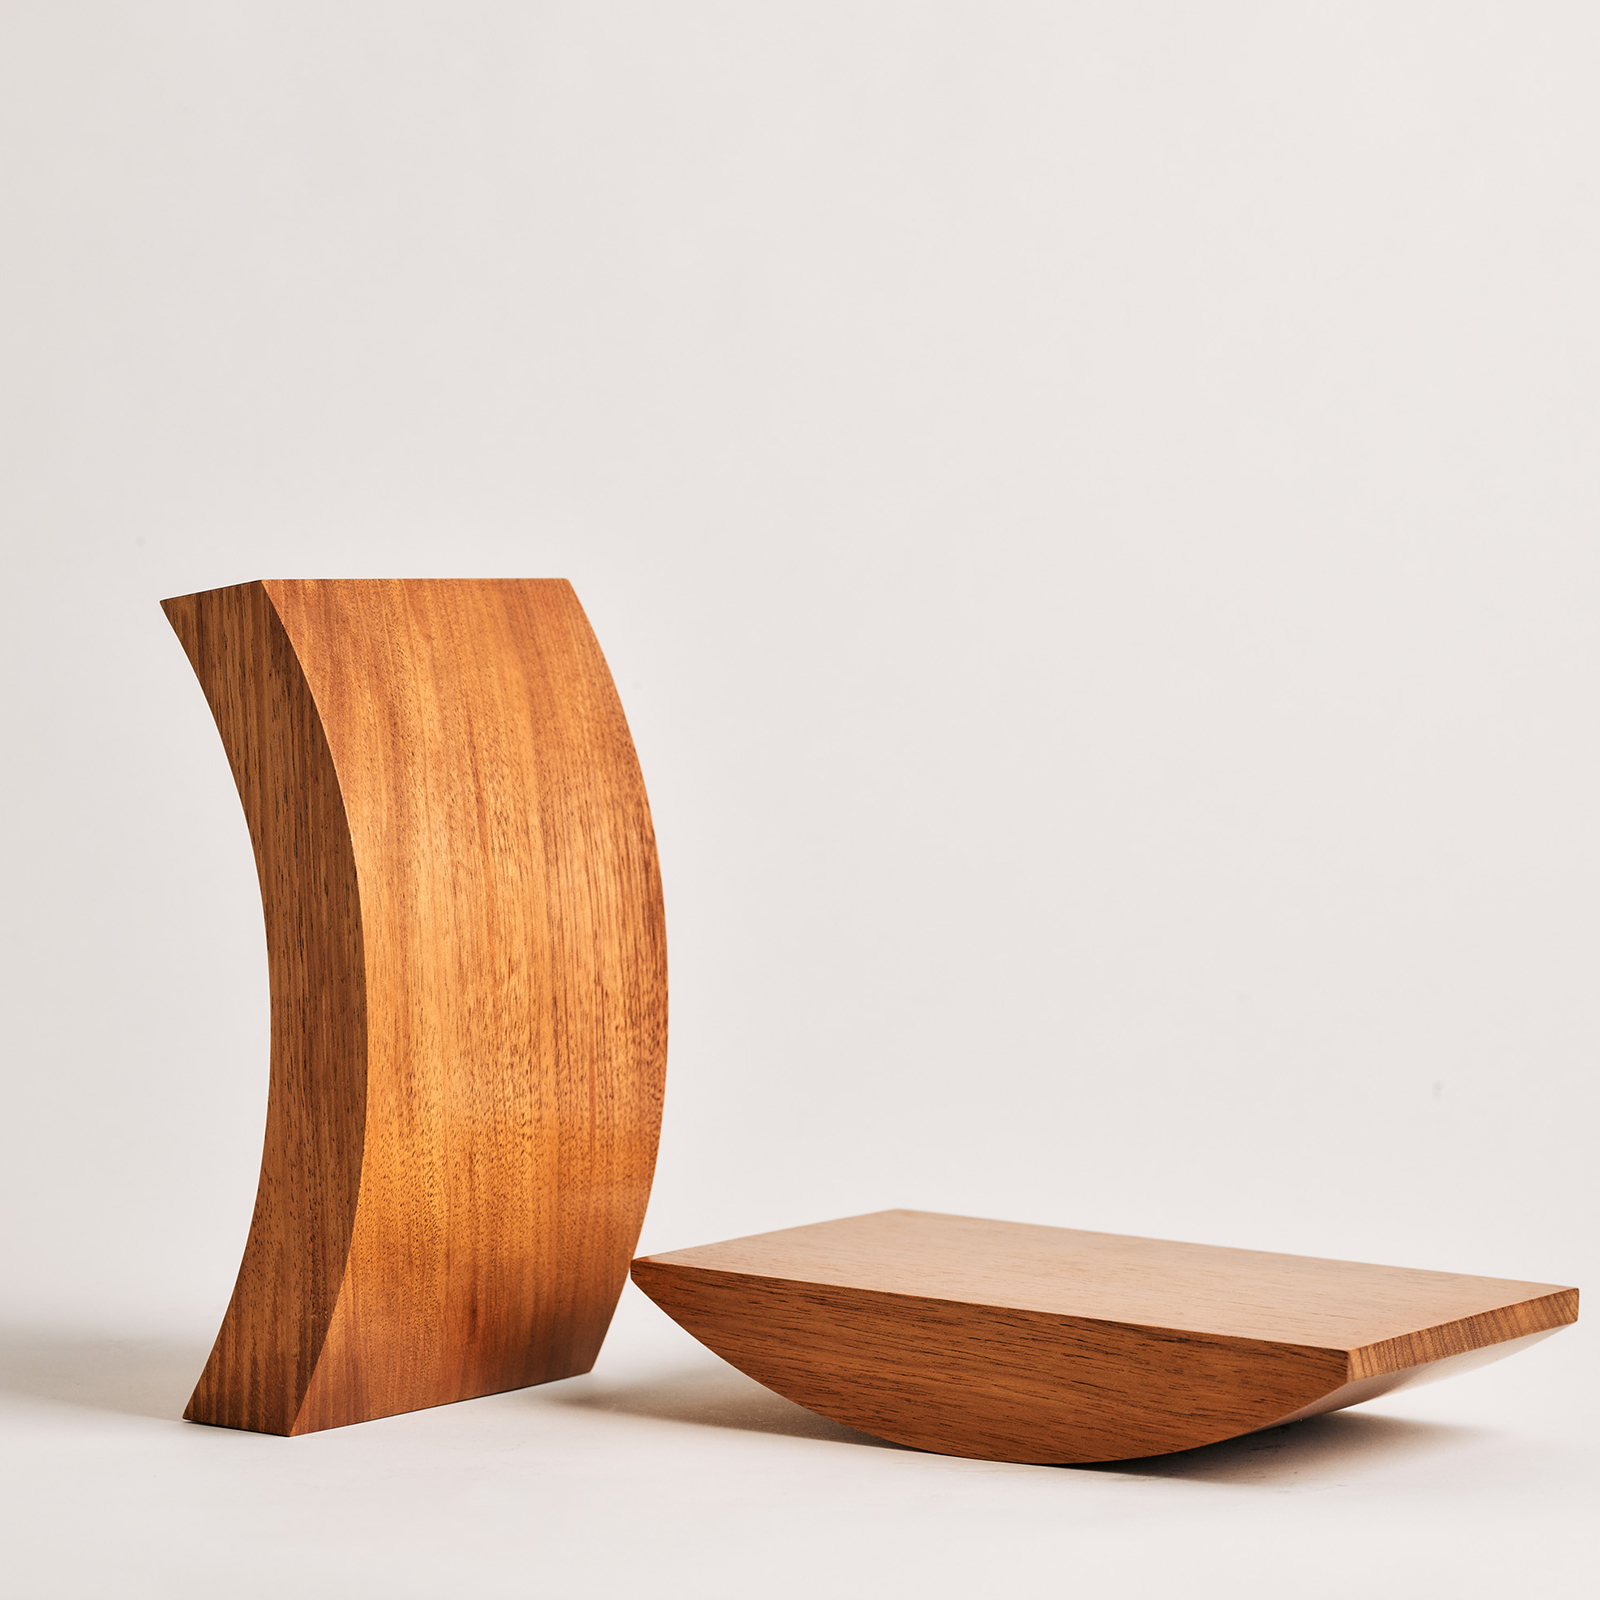 Timber Forms In Tasmanian Blackwood And Limited Edition By Zachary Frankel 5